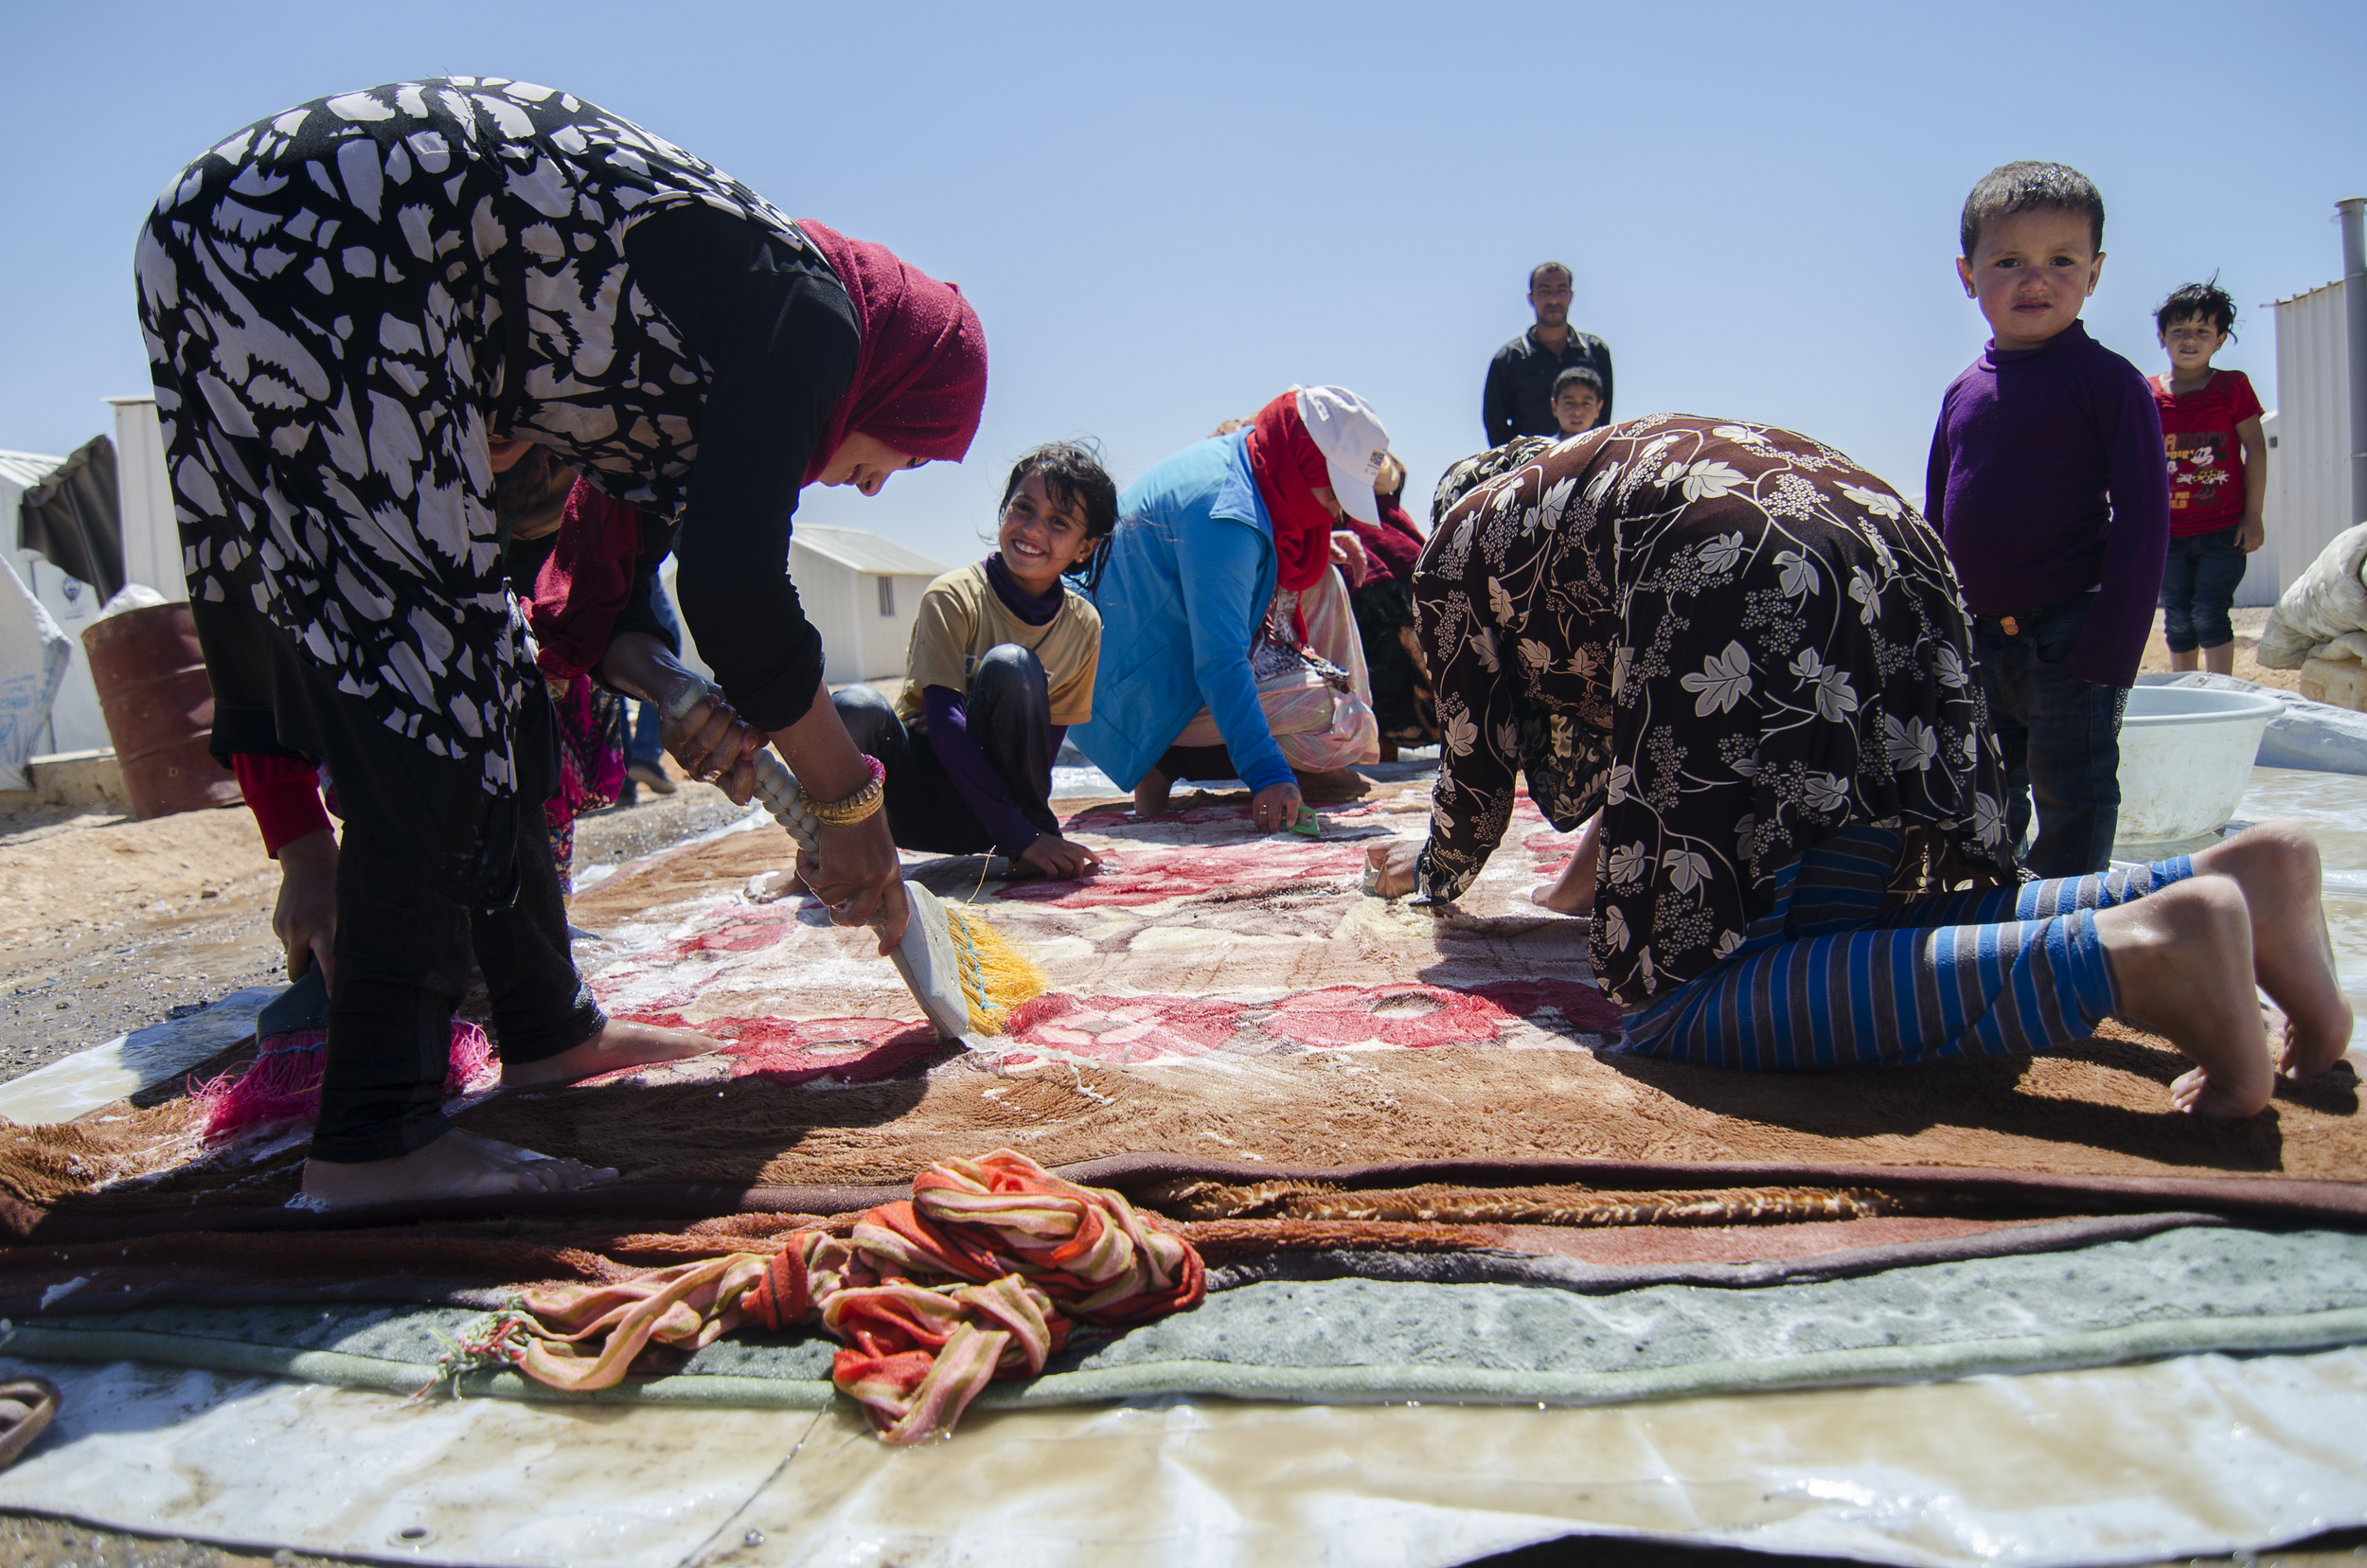 Azraq residents wash blankets outside their metal shelters. Residents say scalding summer temperatures, high food prices and the lack of electricity make the desert camp a harsh option to sustain. June 2014.